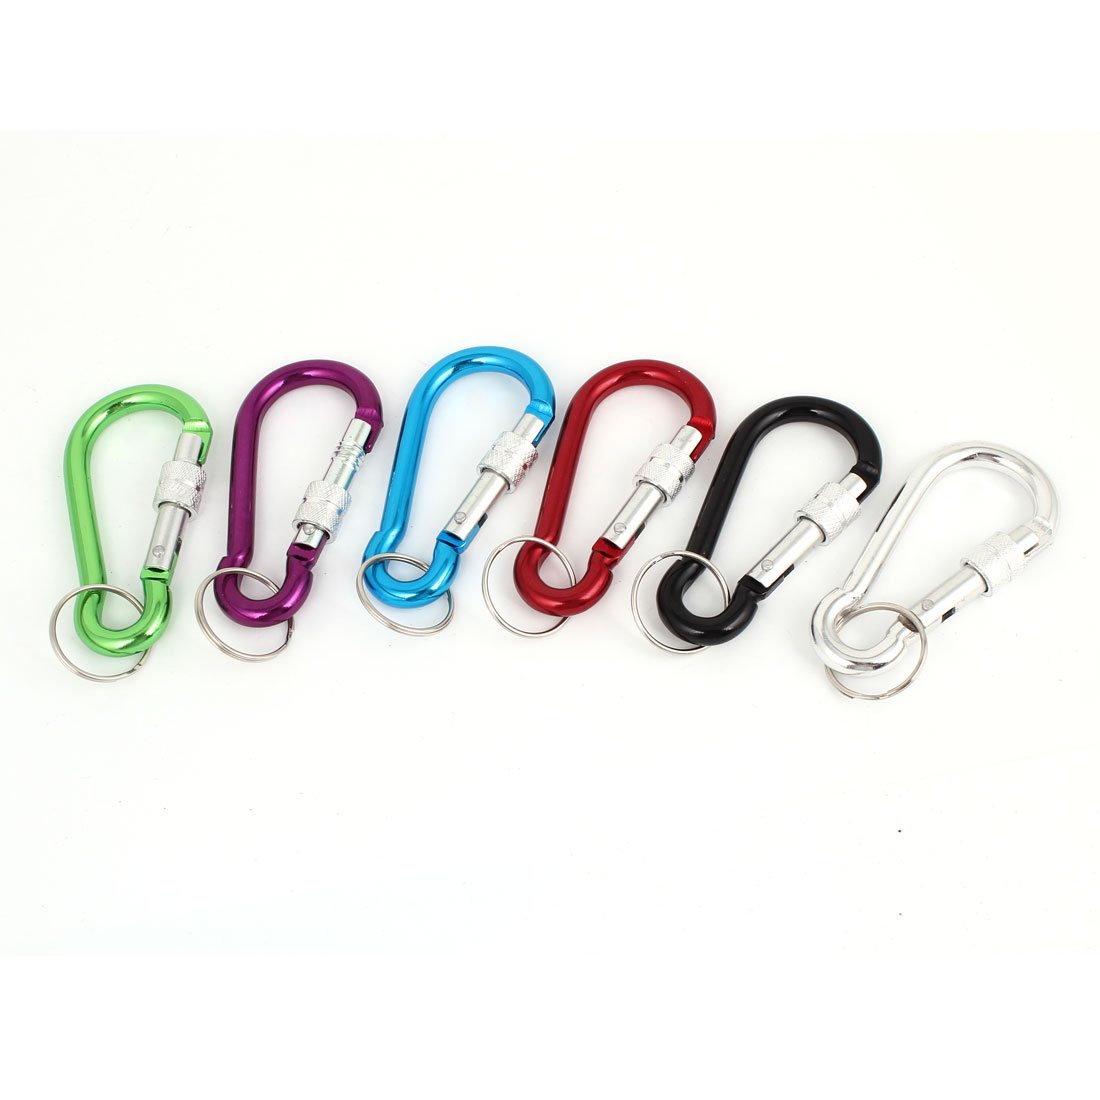 Assorted Color Metal Screw Lock Spring Loaded Gate Carabiners Hooks 6 Pcs